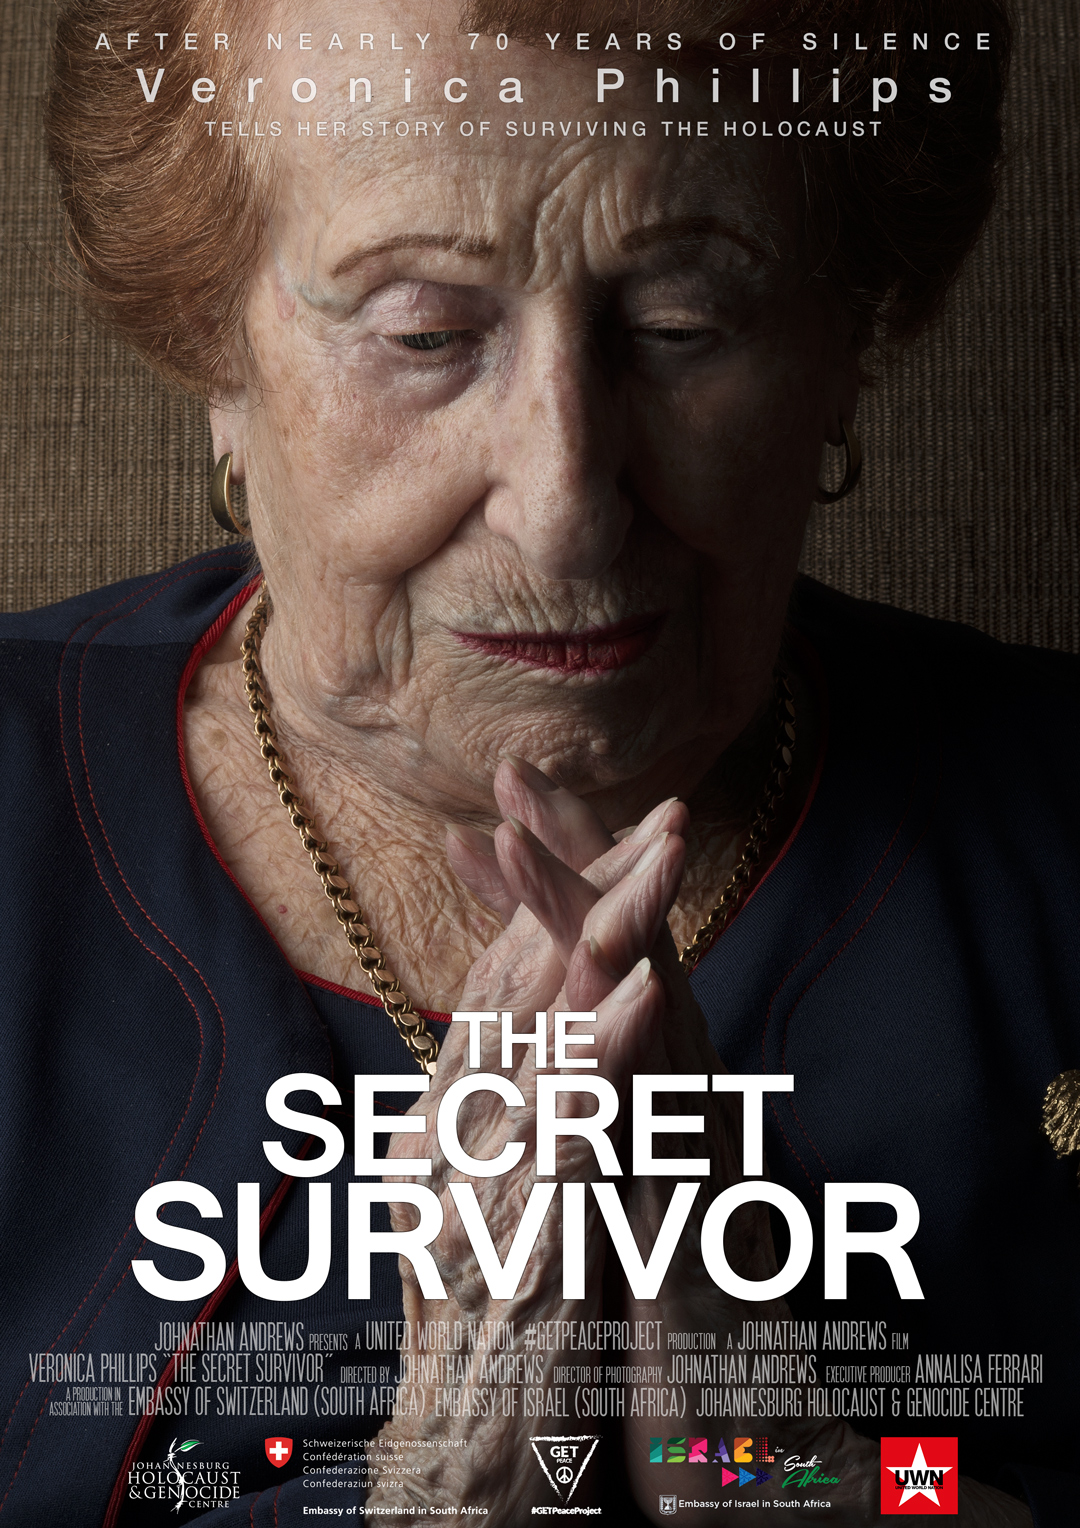 Veronica Phillips The Secret Survivor